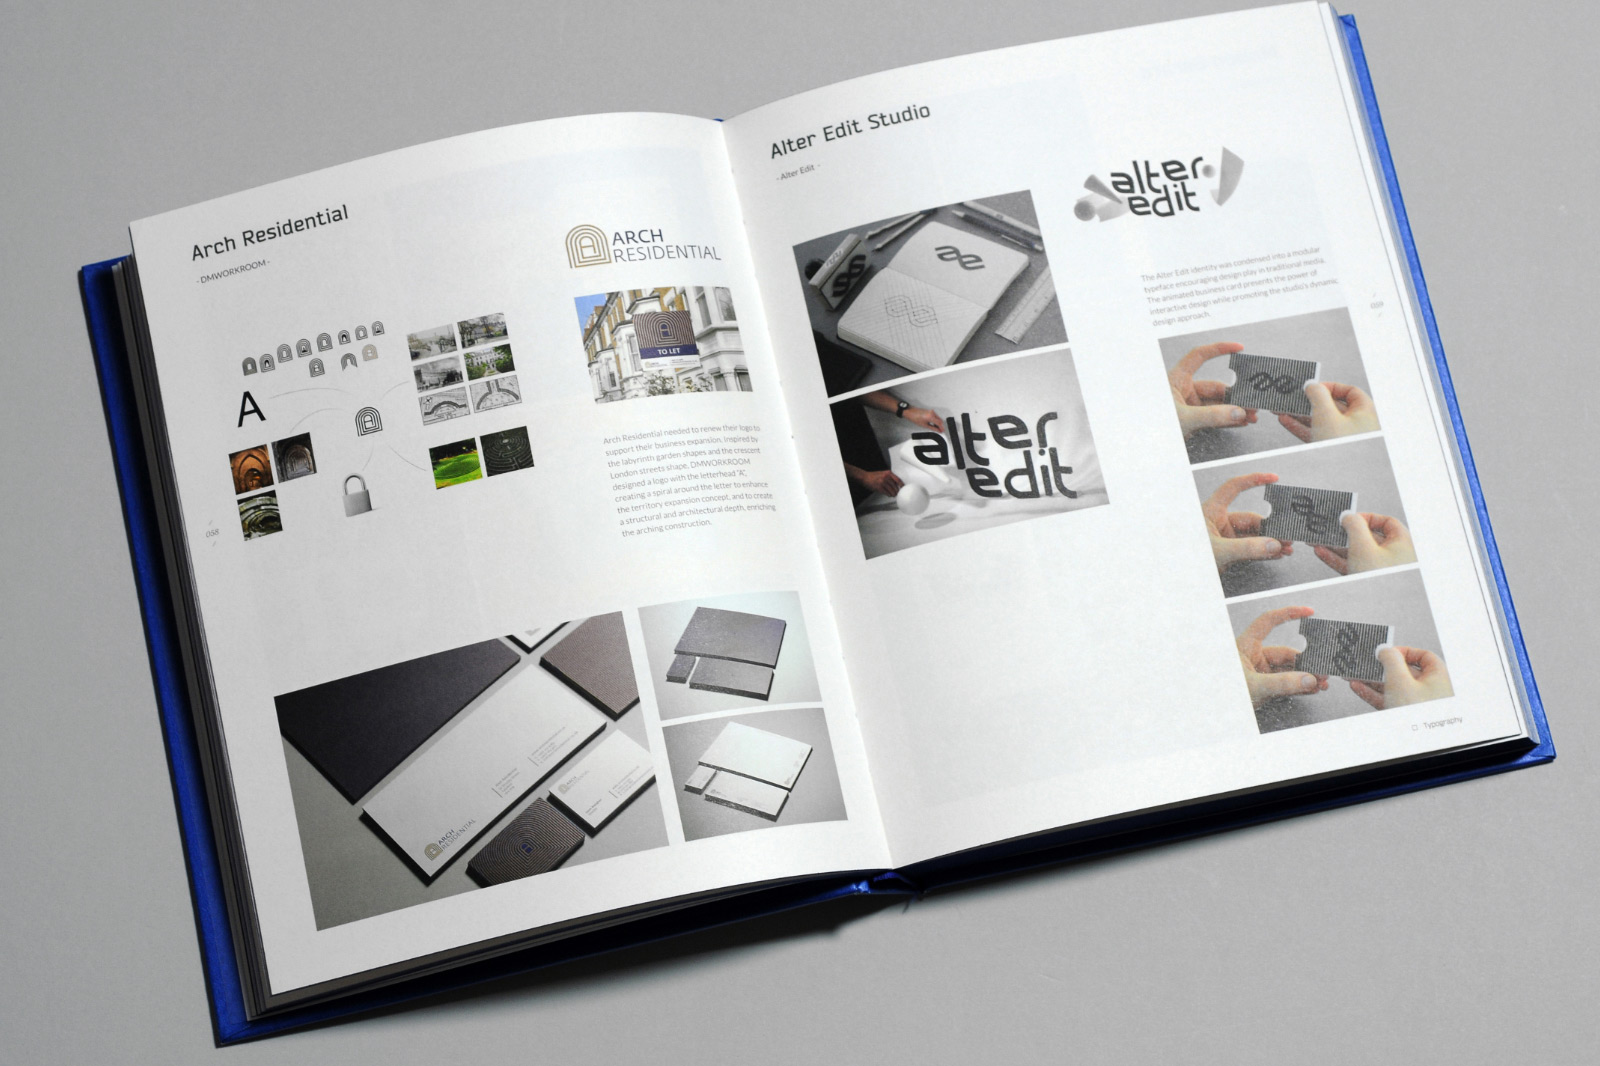 Arch Residential brand identity by Europa Studio published in Branding Element, Logo 3, Volume 3, 58, 2014